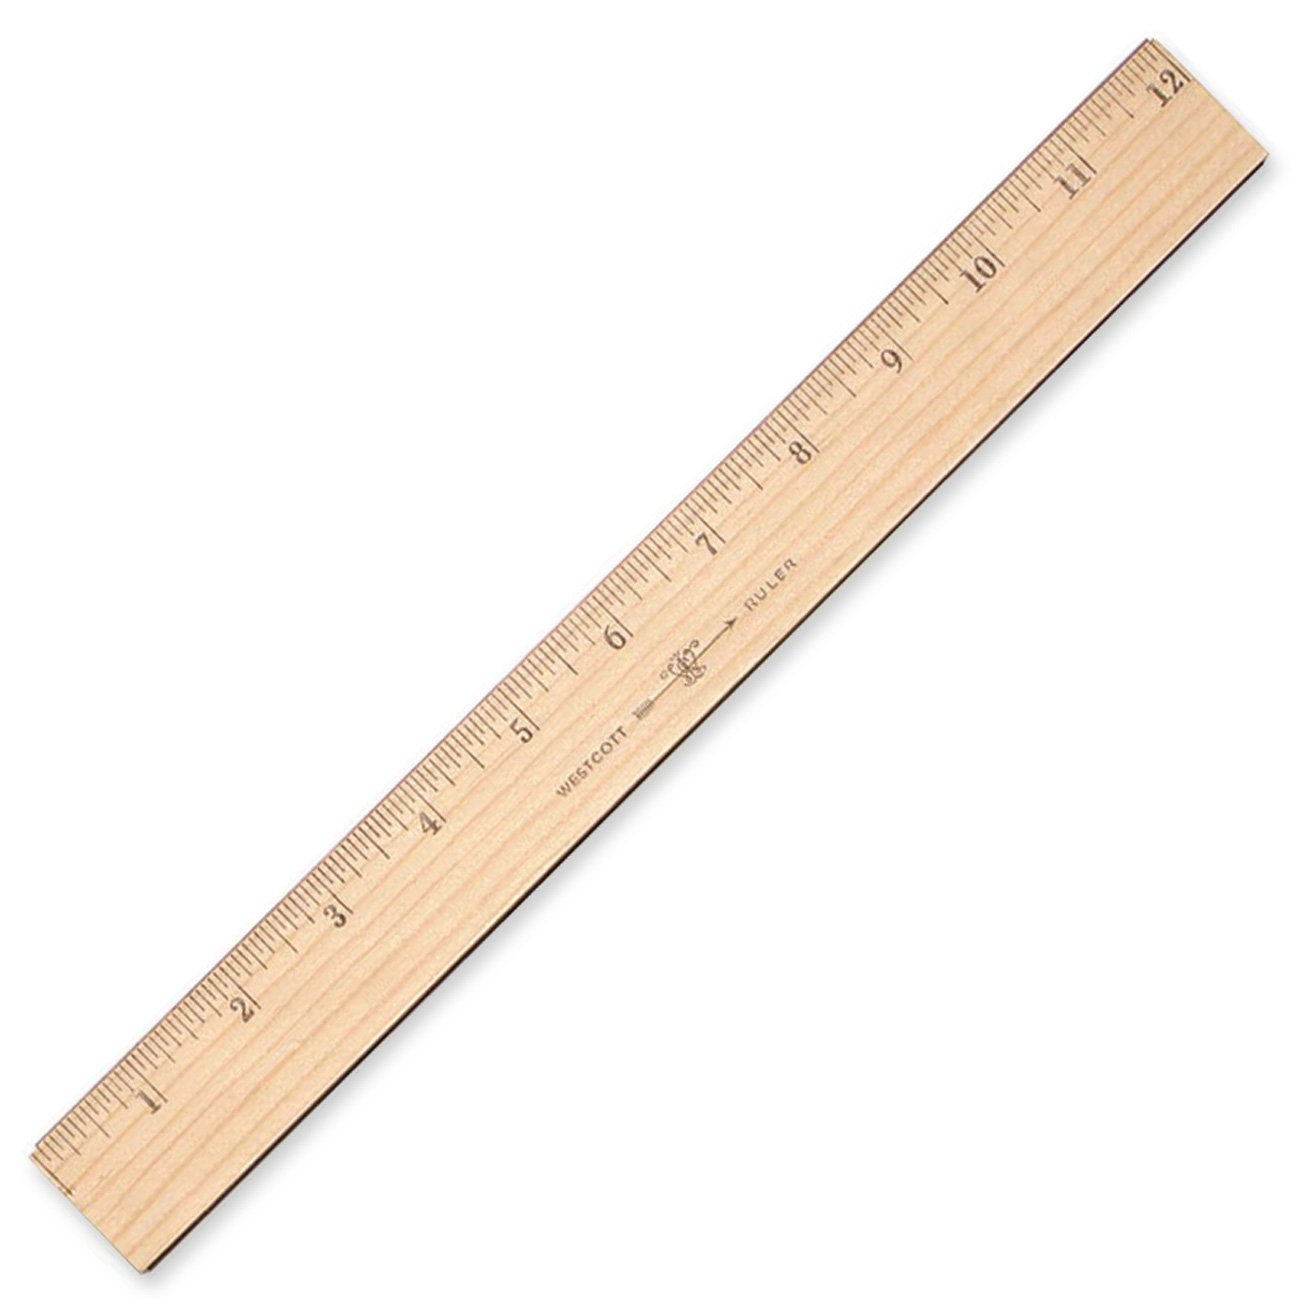 Westcott Wood Ruler Measuring Metric and 1/16 '' Scale With Single Metal Edge, 30 cm (10375)